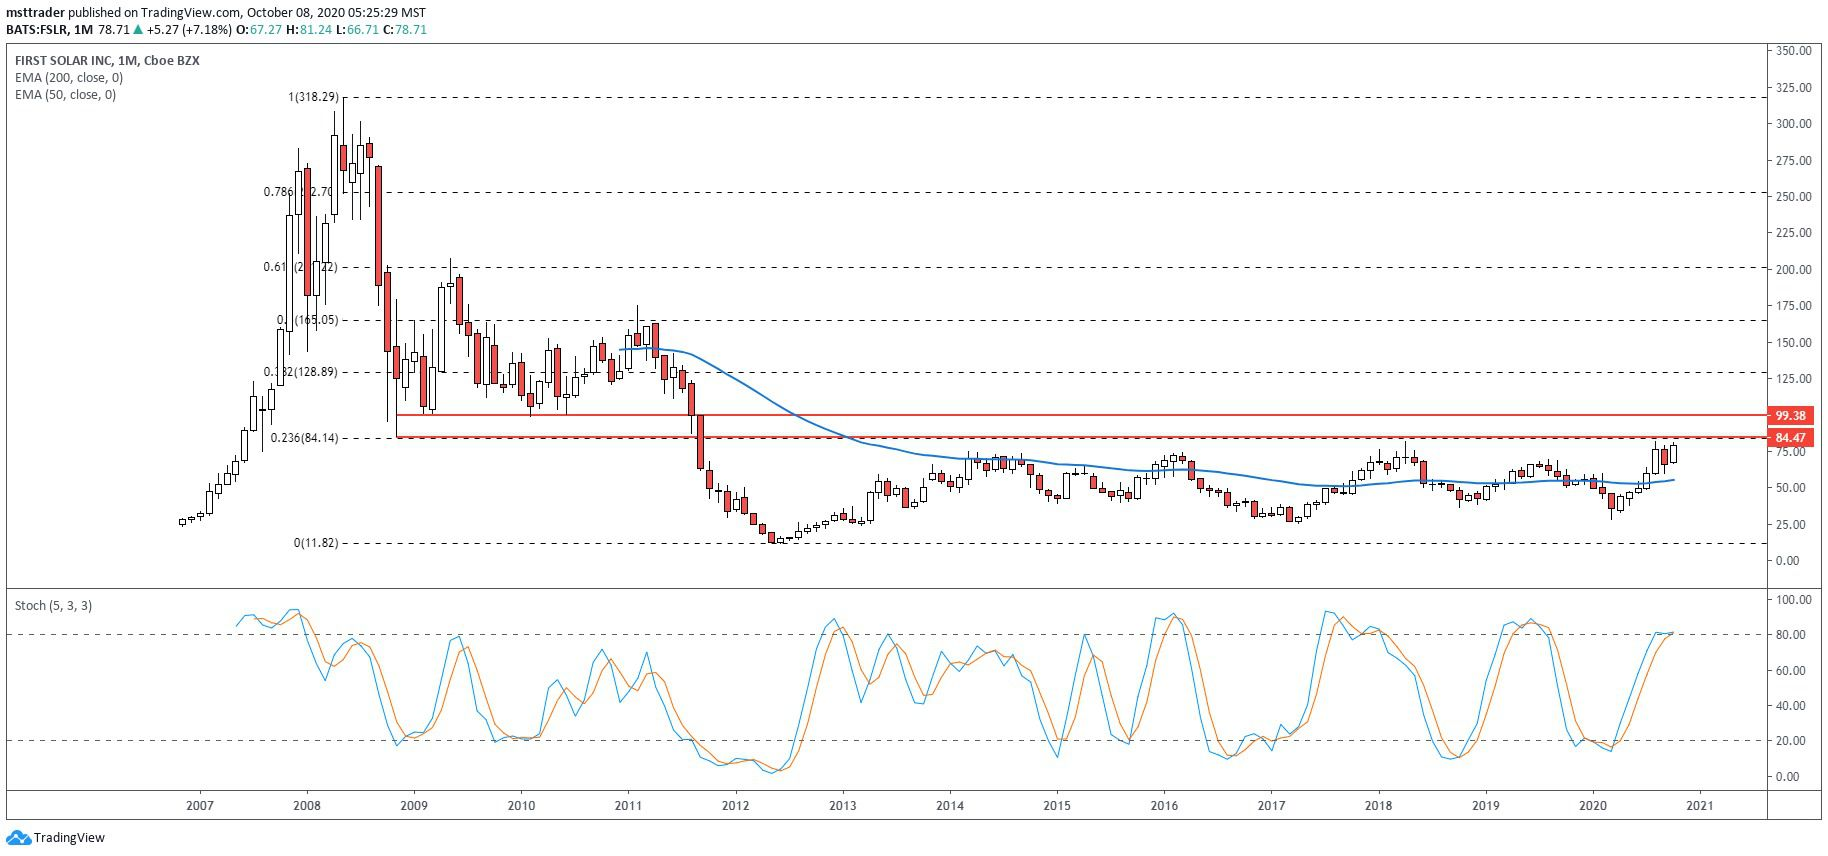 Long-term chart showing the share price performance of First Solar, Inc. (FSLR)